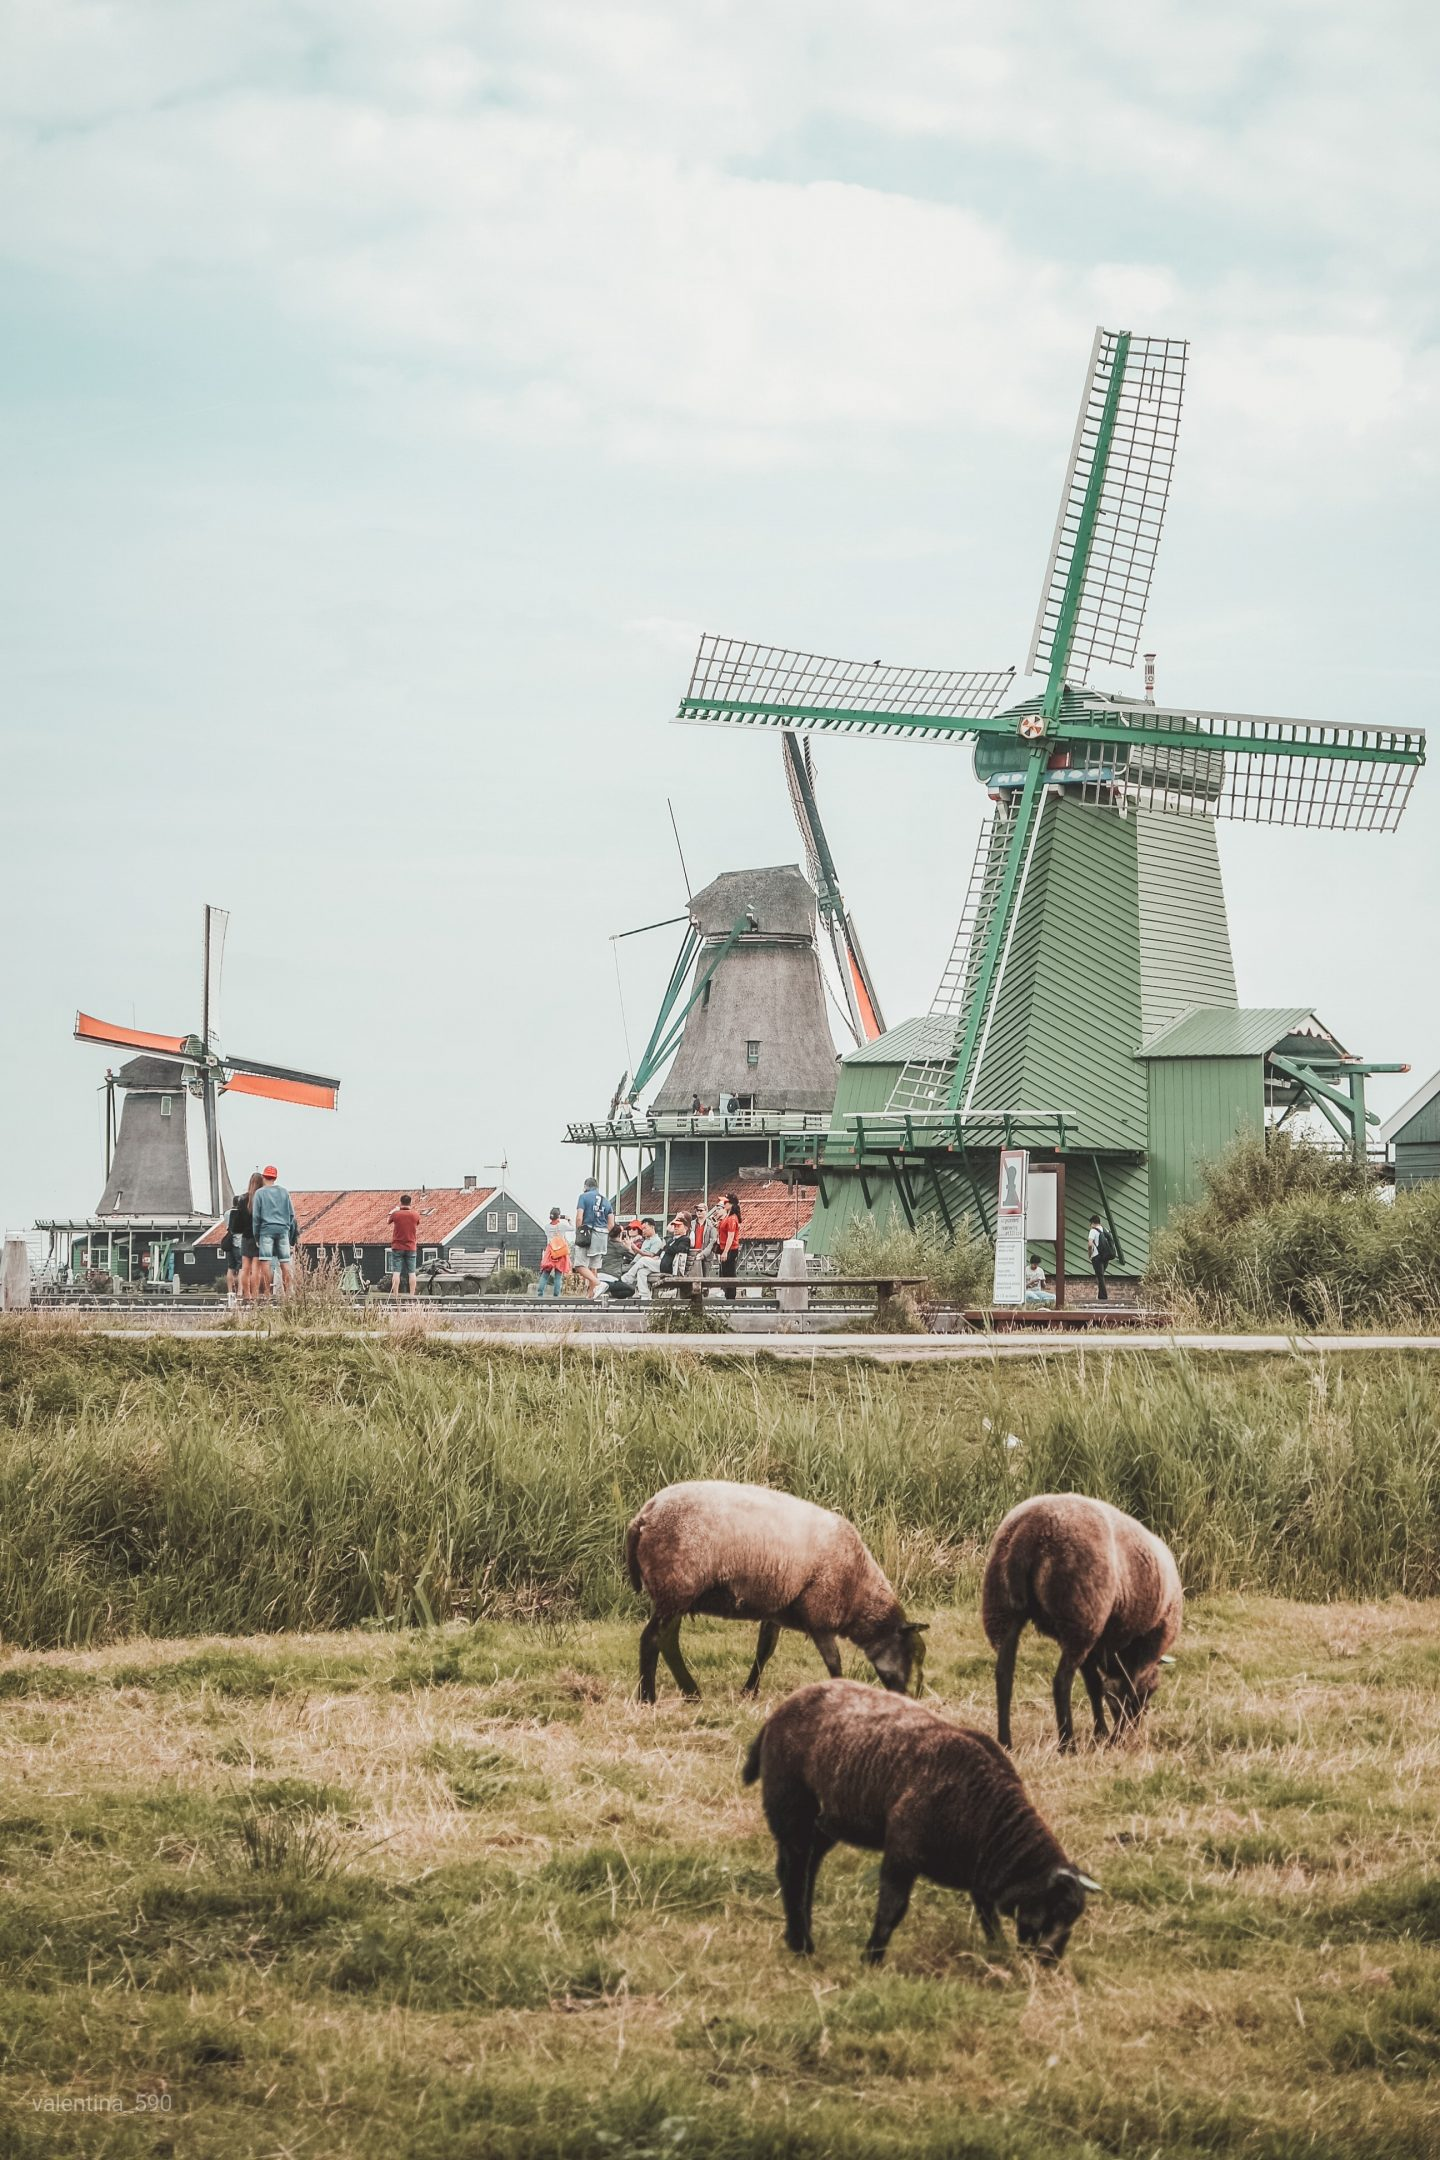 windmills in the netherlands and sheep, dutch culture facts and misconceptions